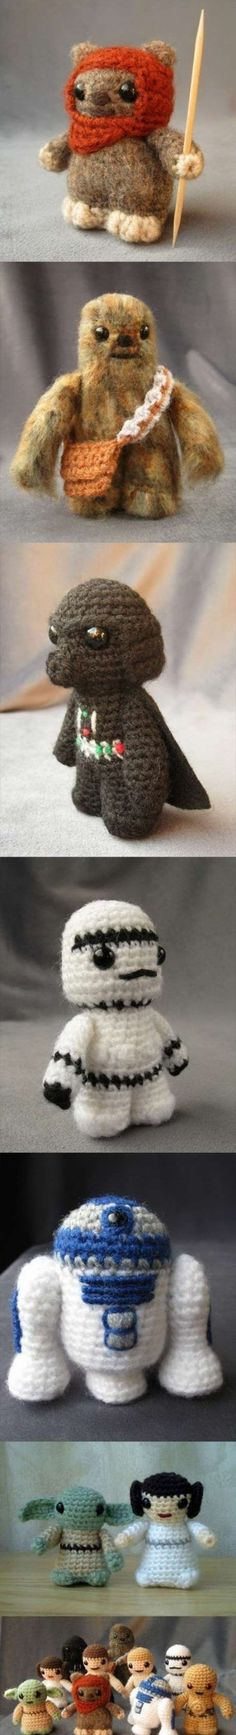 star wars crochet characters!! I would practice crocheting more if I was good enough to make these!!!!